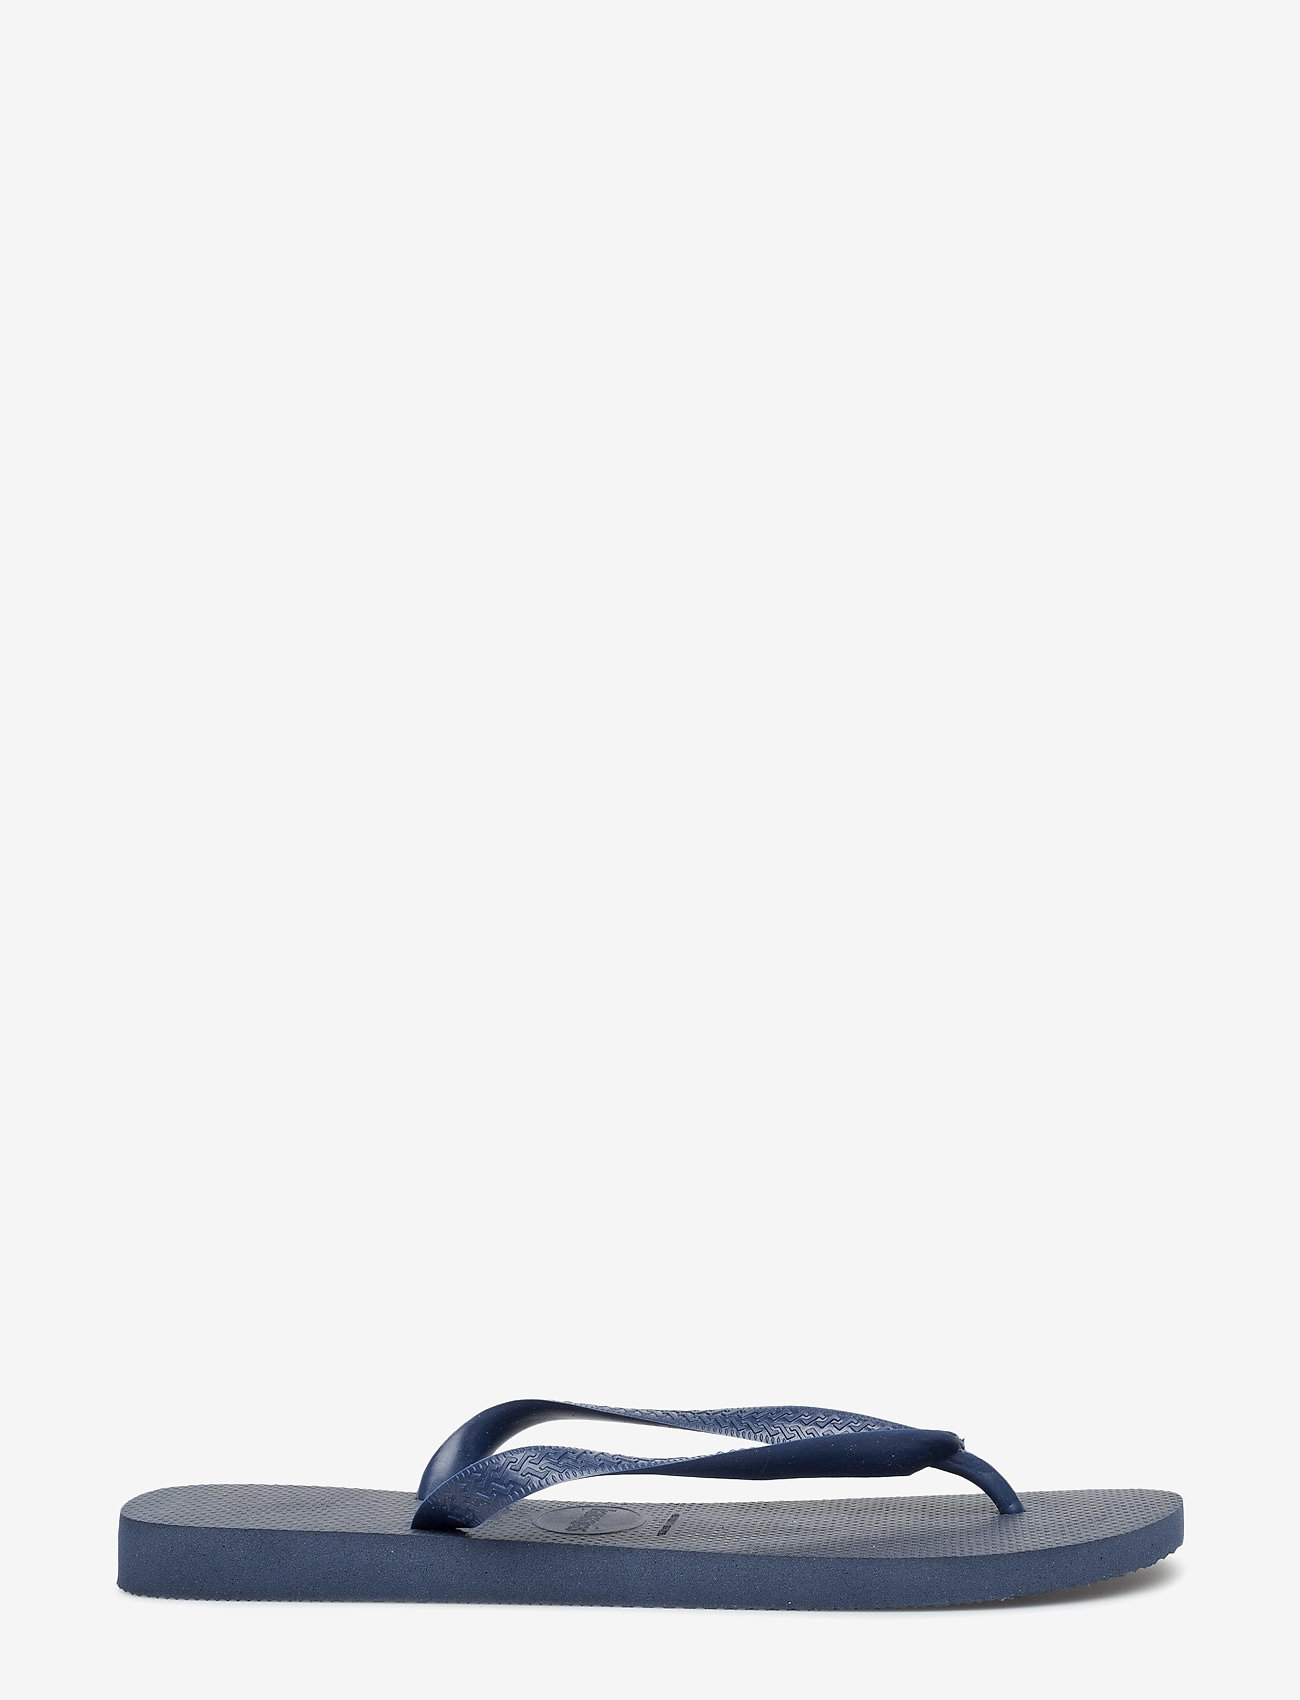 Havaianas - Top - teen slippers - navy blue - 1